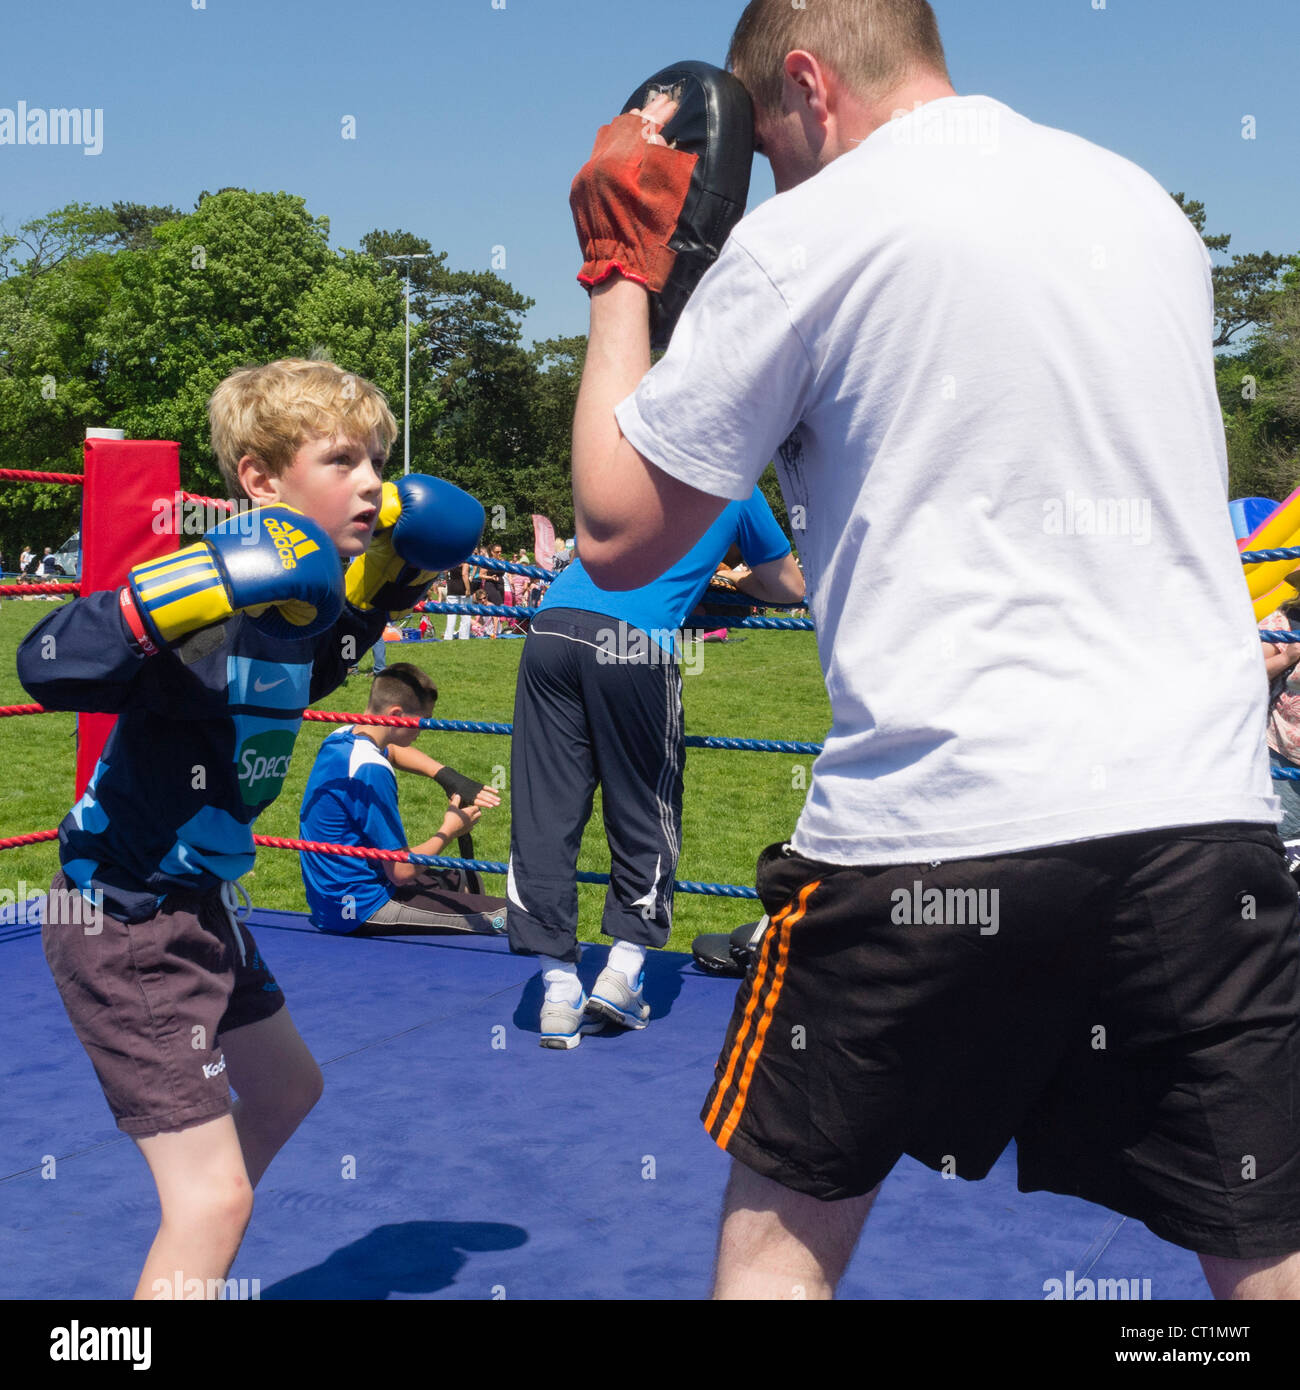 a young boy sparring boxing boxer lesson training uk - Stock Image